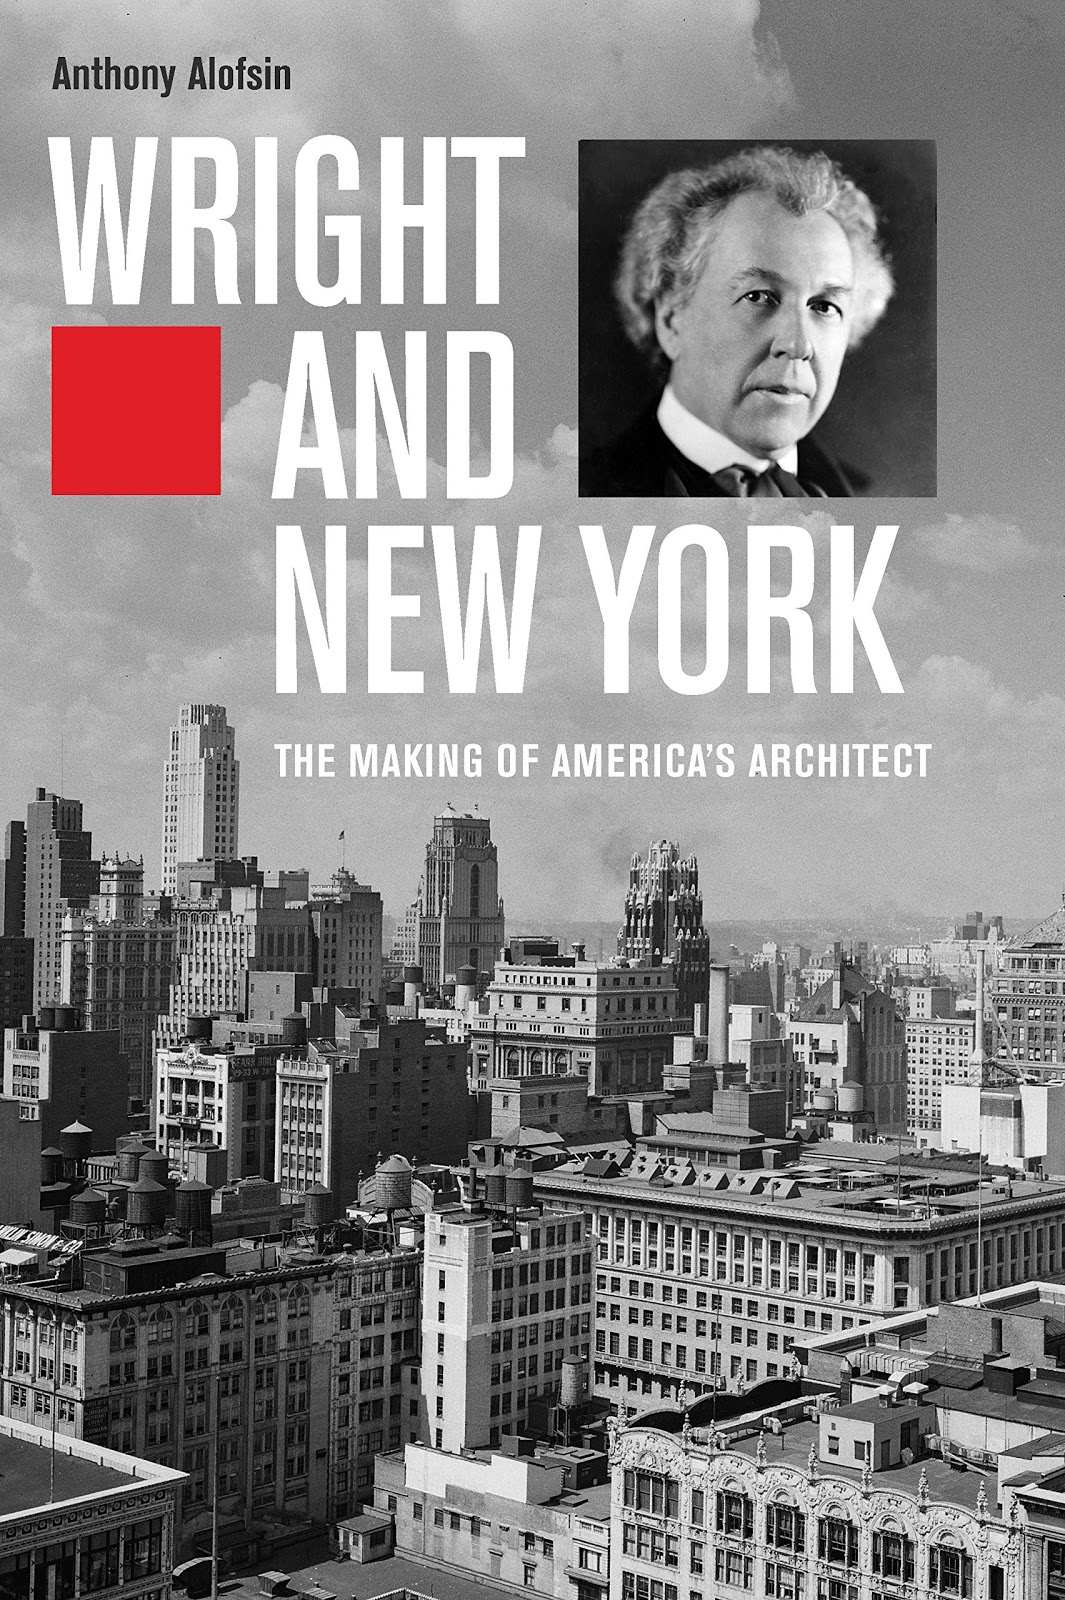 Wright and New York book cover